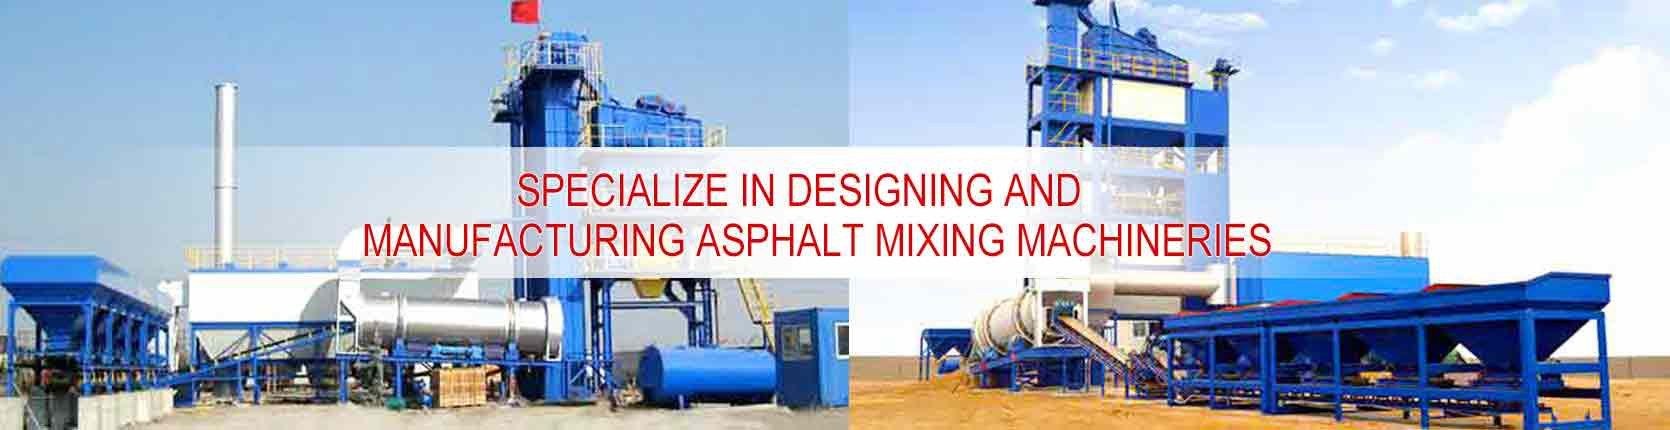 Asphalt Batch Mix Equipment for Sale in AIMIX